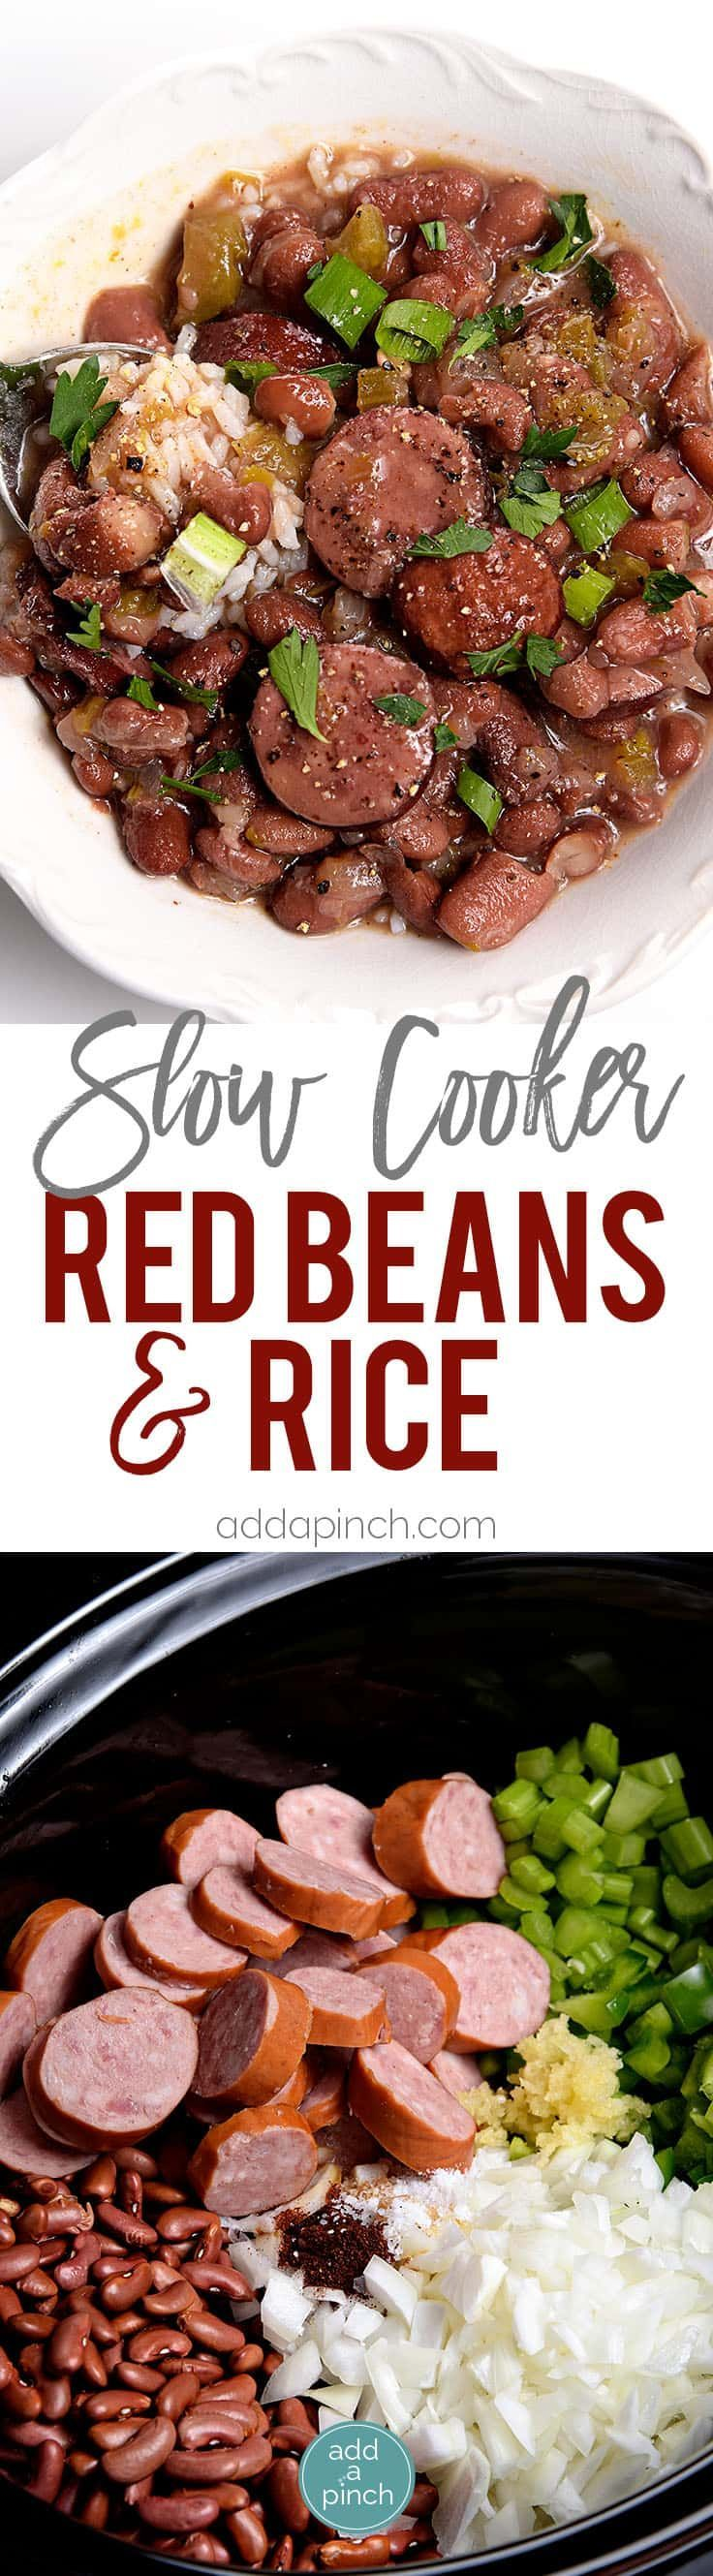 Slow Cooker Red Beans and Rice Recipe -A traditional Creole red beans and rice recipe that everyone loves made easy in the slow cooker! // addapinch.com